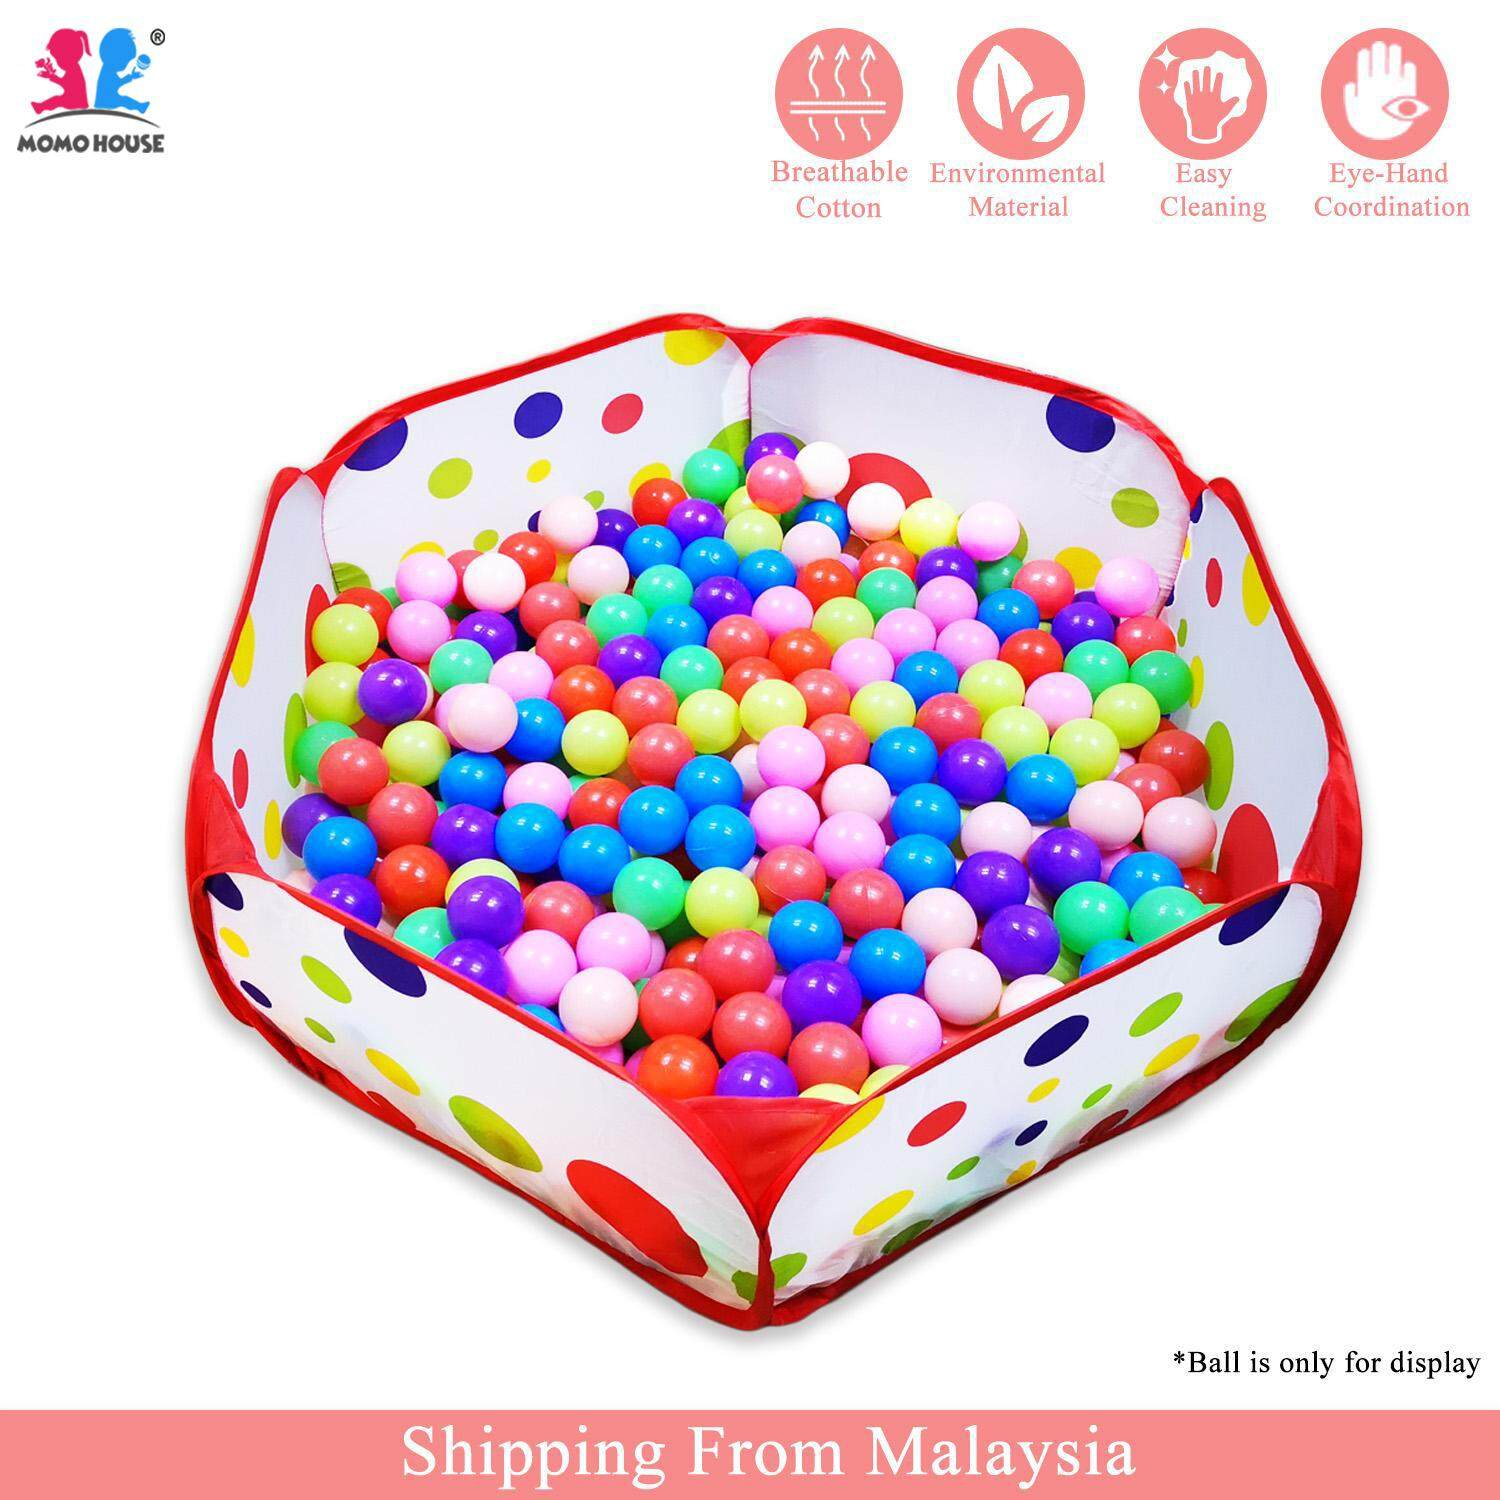 Momo House Foldable Ocean Ball Pool Tent Portable Pit Pool By Momo House.